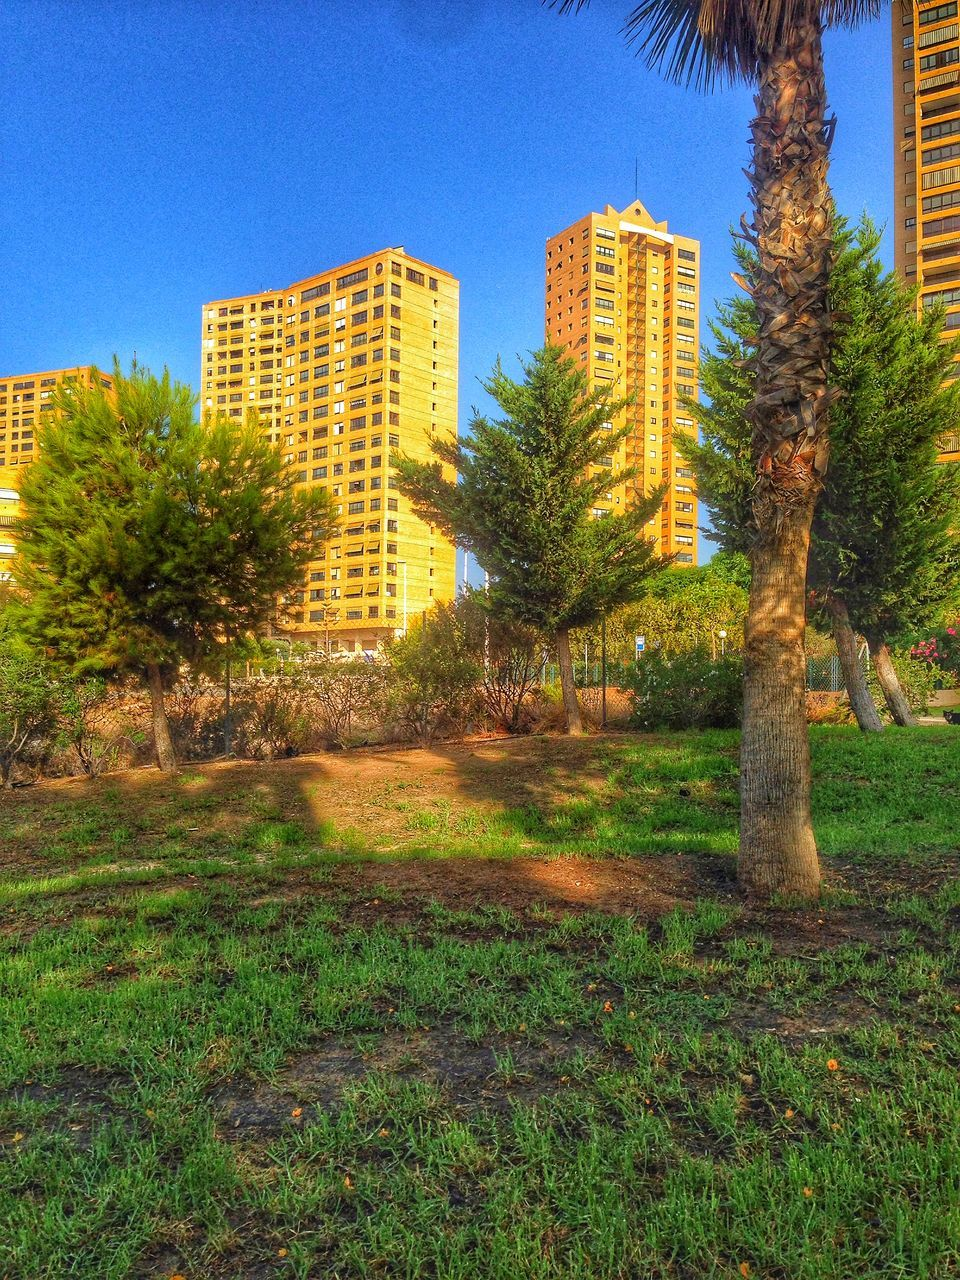 architecture, building exterior, tree, built structure, grass, growth, no people, day, outdoors, clear sky, city, nature, skyscraper, sky